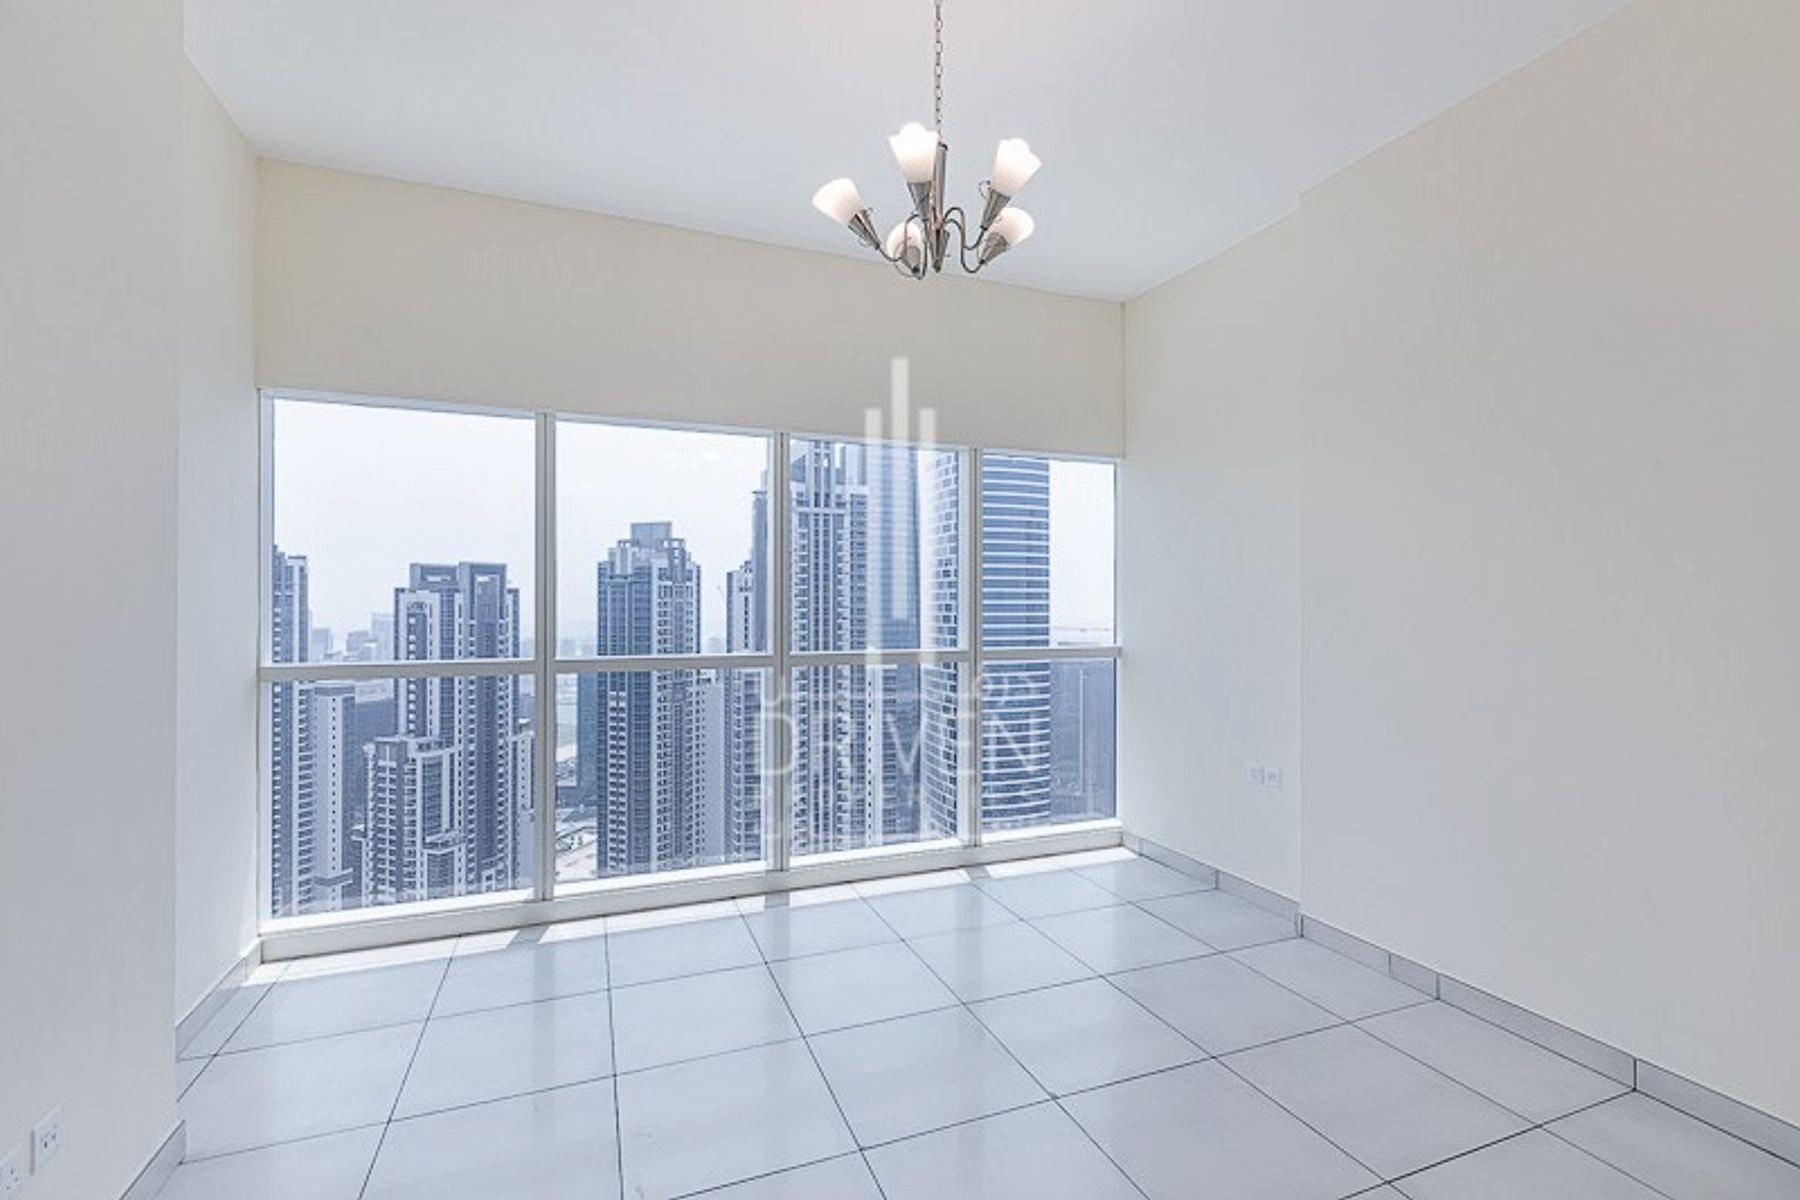 Apartment for Rent in Al Batha Tower, Business Bay